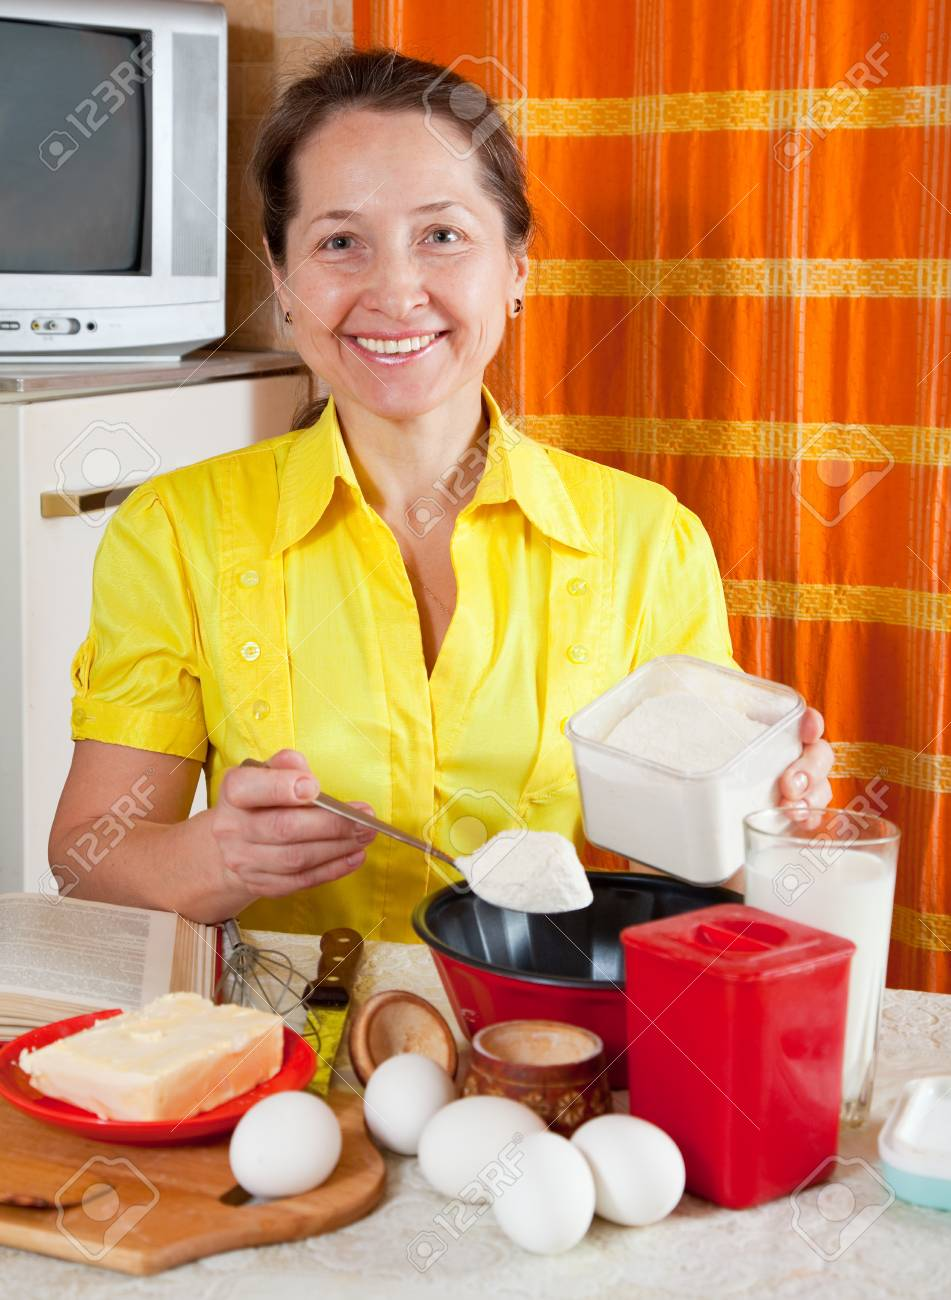 Joyful woman making dough in the kitchen at home Stock Photo - 8769969